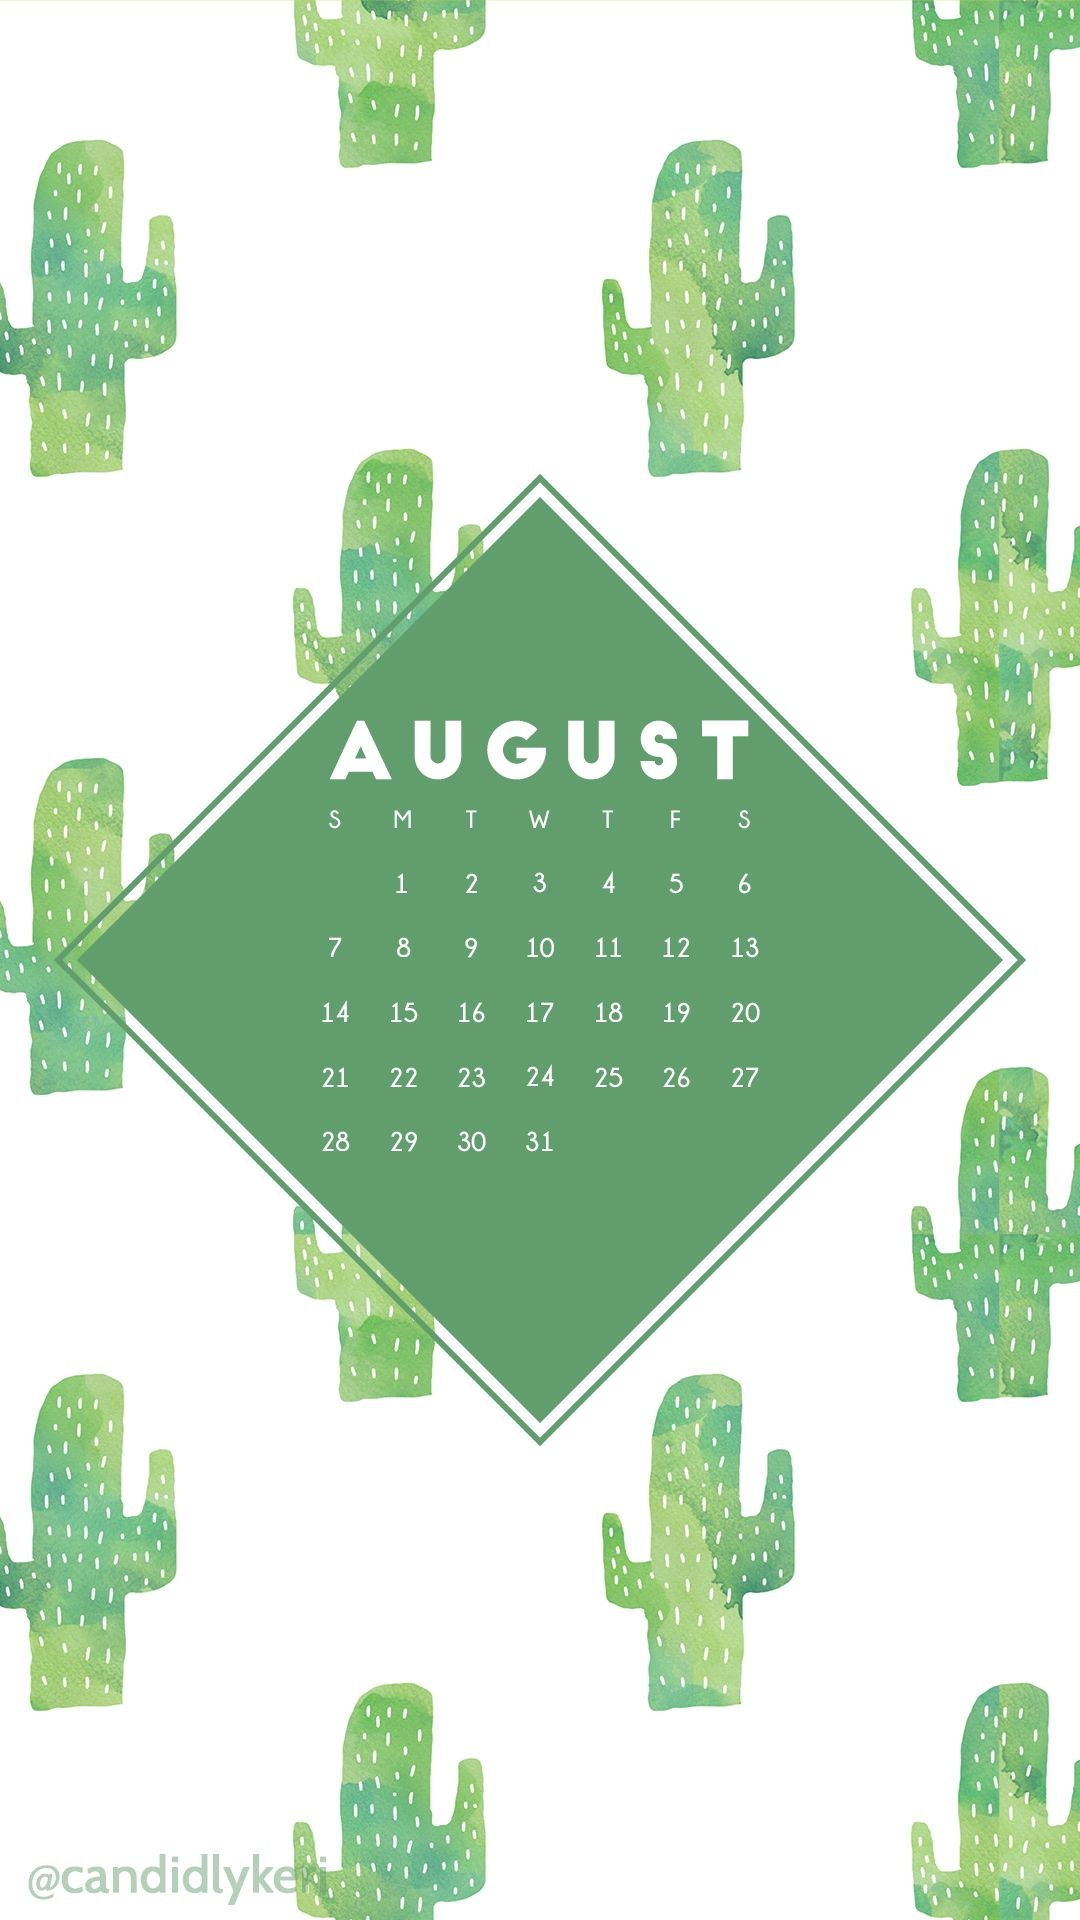 Cactus Fun Cacti Green Watercolor Background August Calendar 2016 Wallpaper  You Can Download For Free On